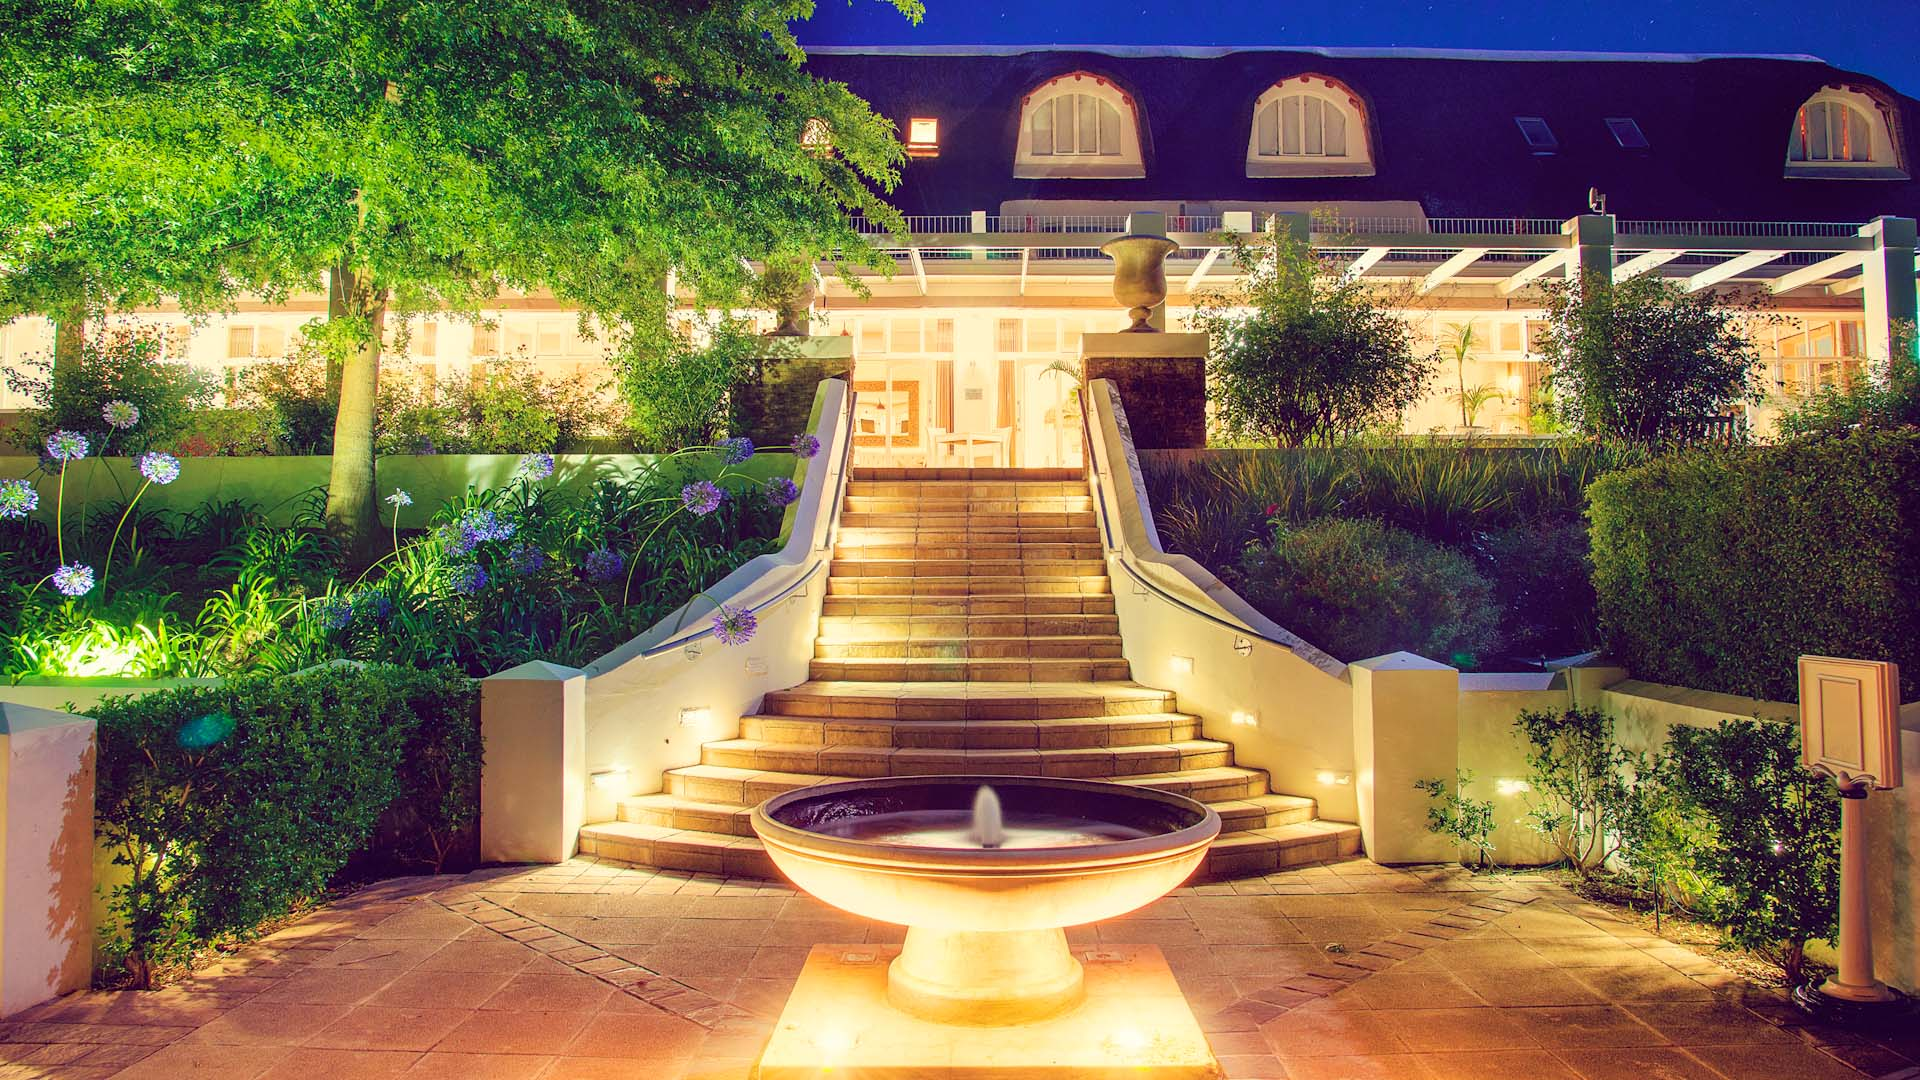 Le Franschhoek Hotel & Spa, South Africa